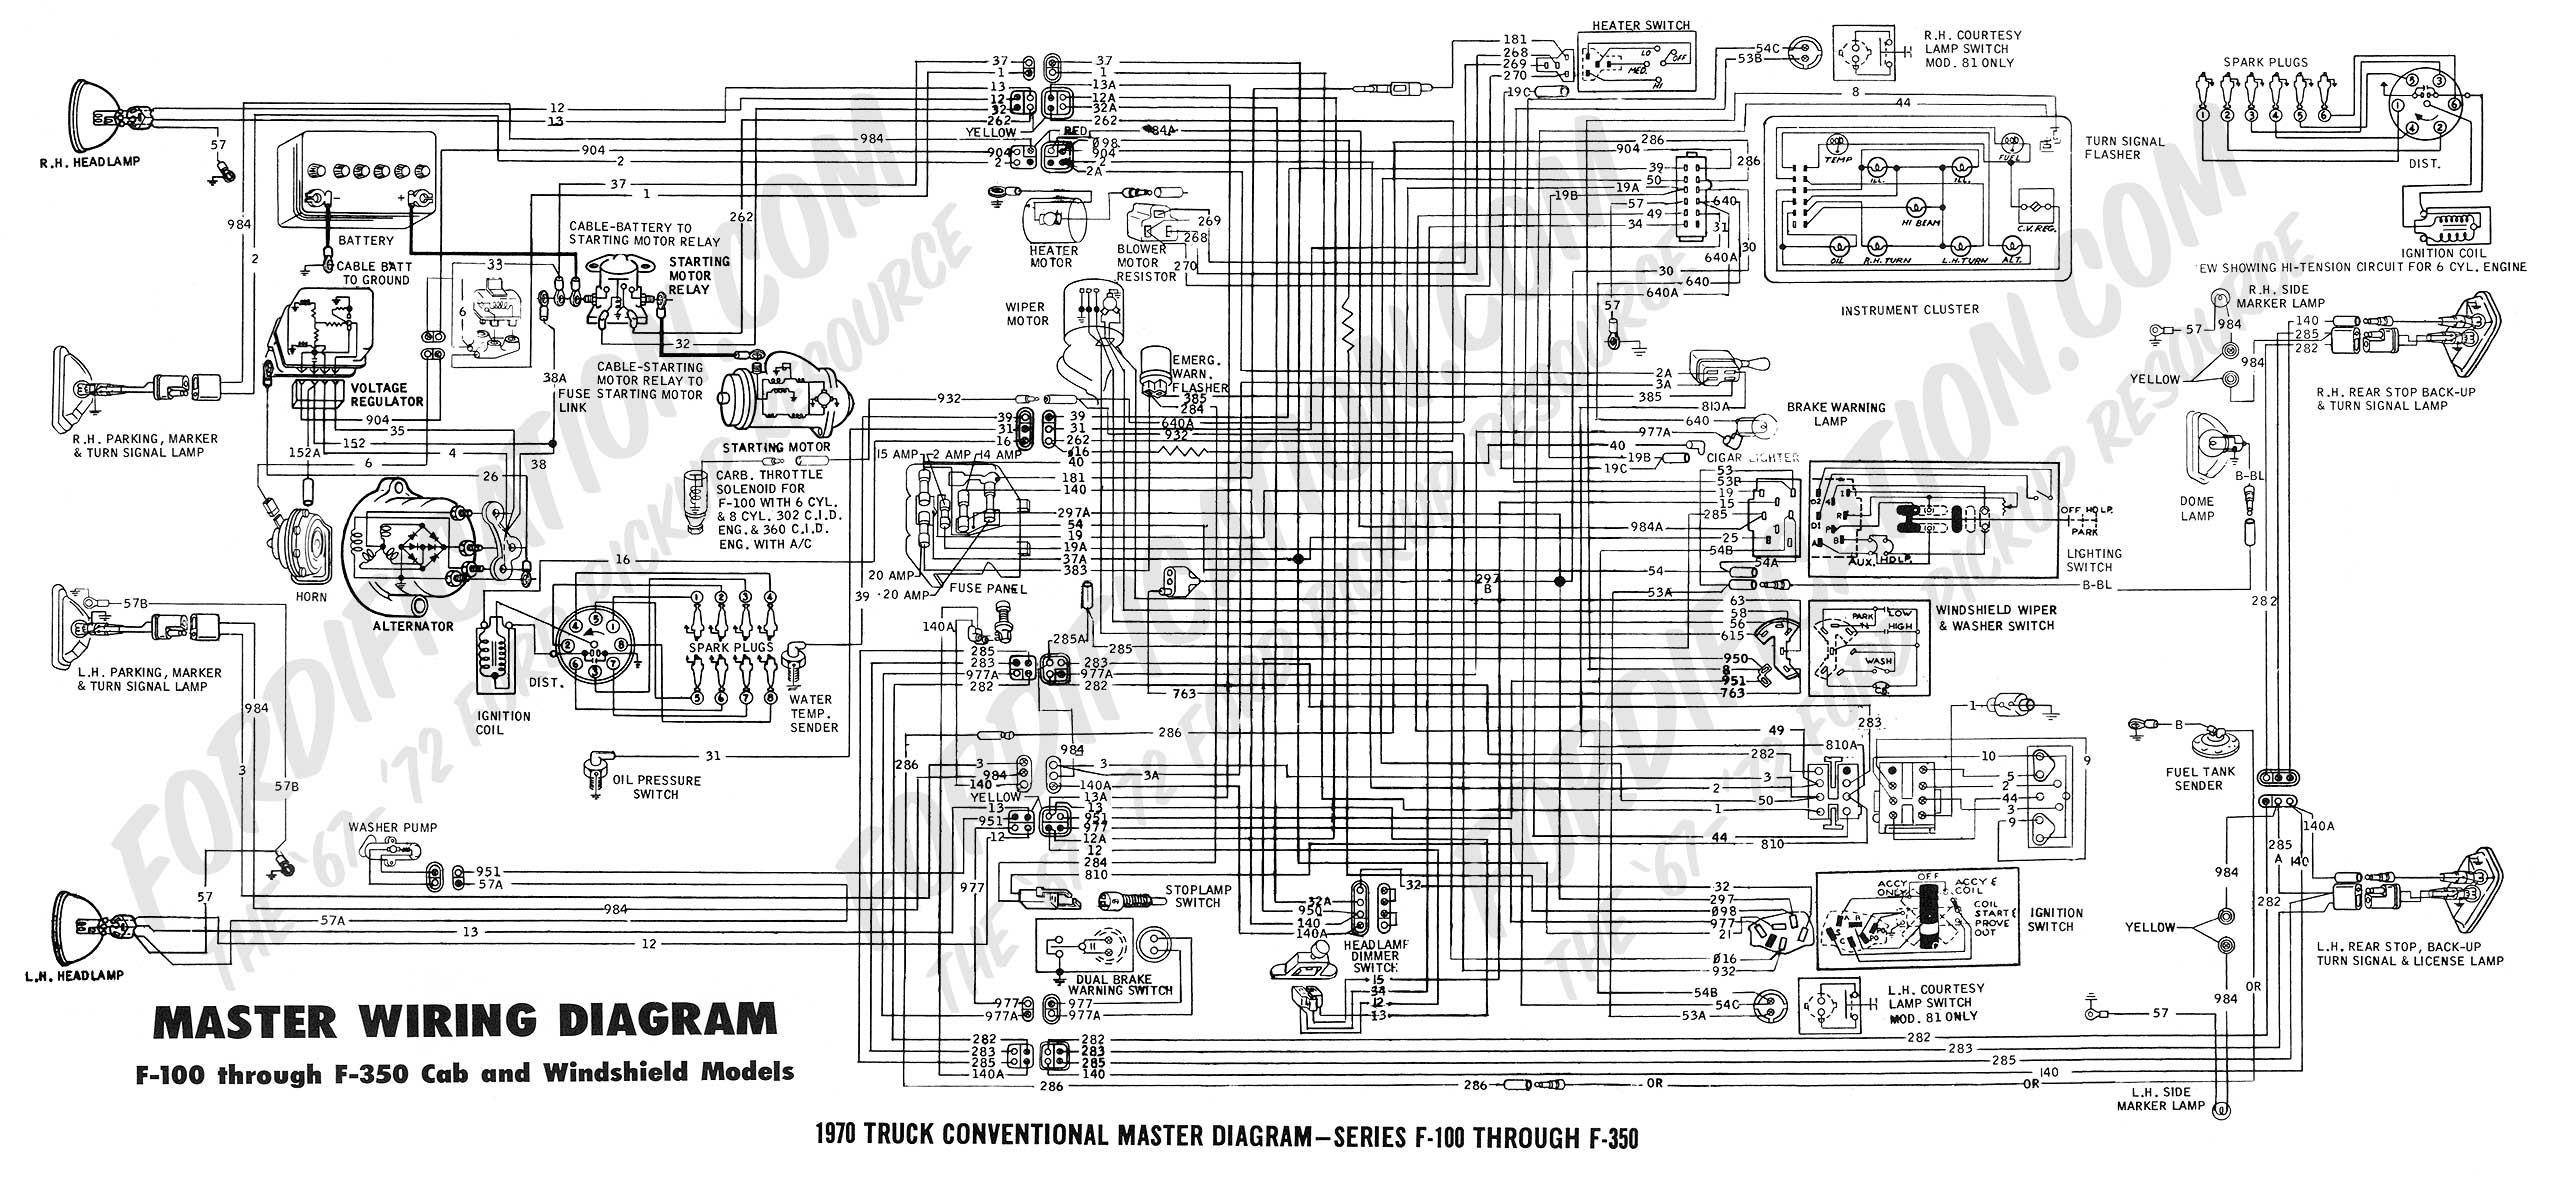 2000 ford econoline van fuse diagram ford van wiring diagram ford wiring diagrams